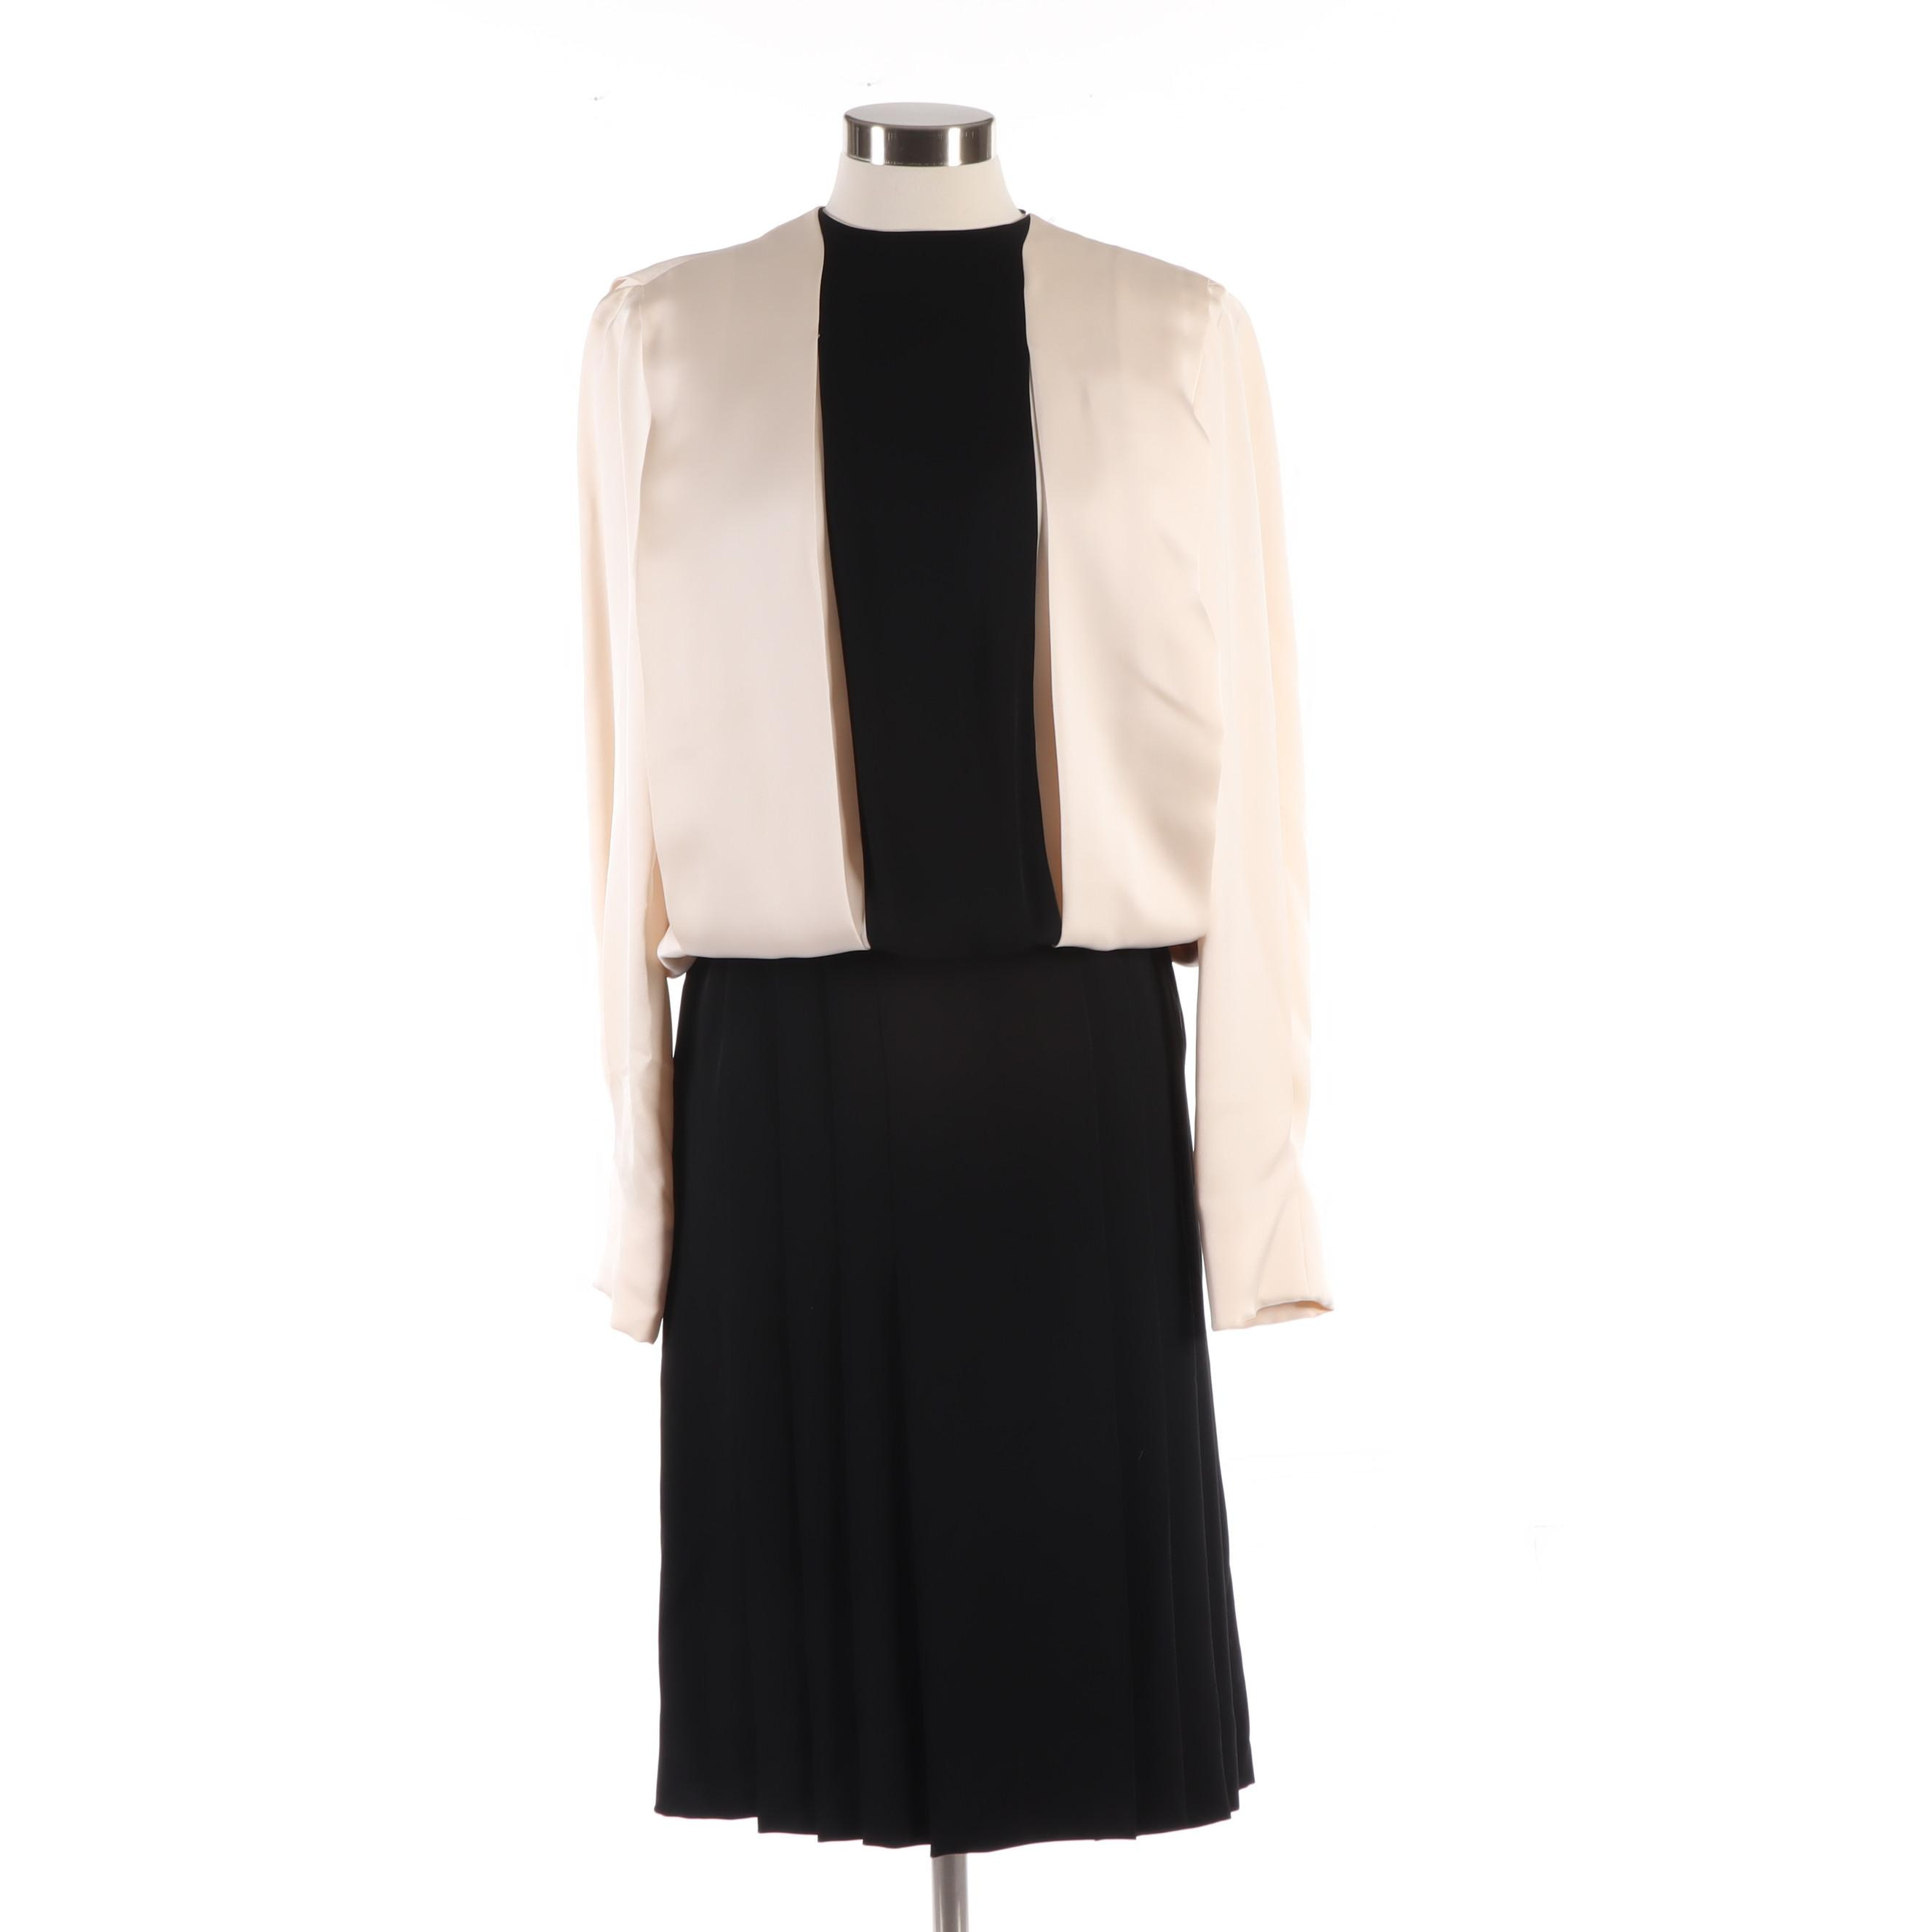 James Galanos Ivory and Black Cocktail Dress with Black Buttons, 1980s Vintage